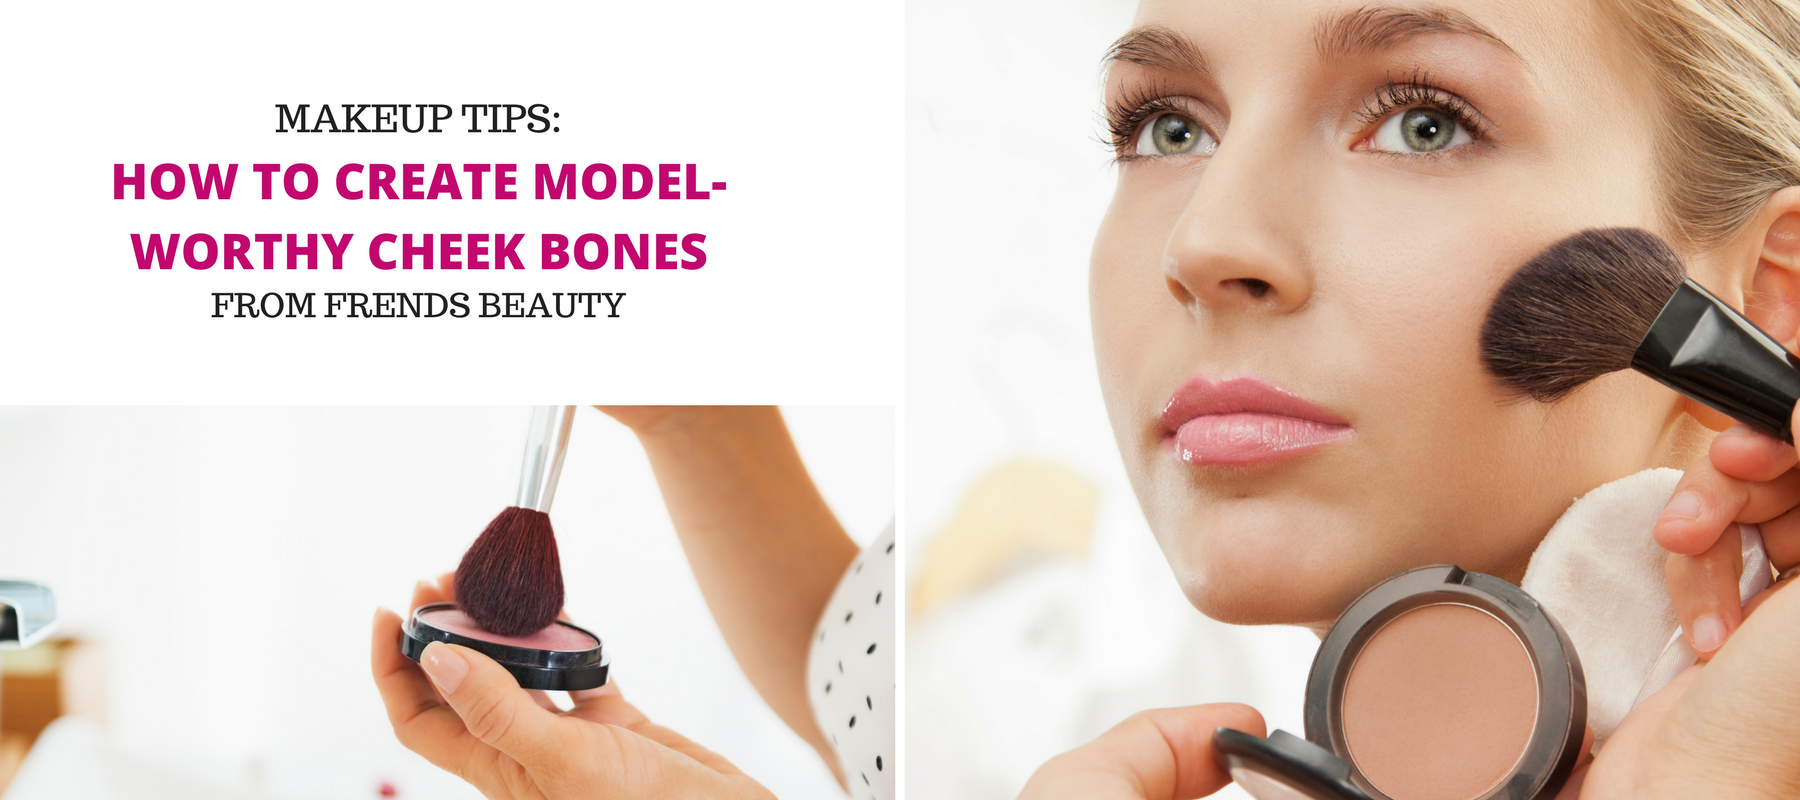 How To Create Model-WorthyCheekbones